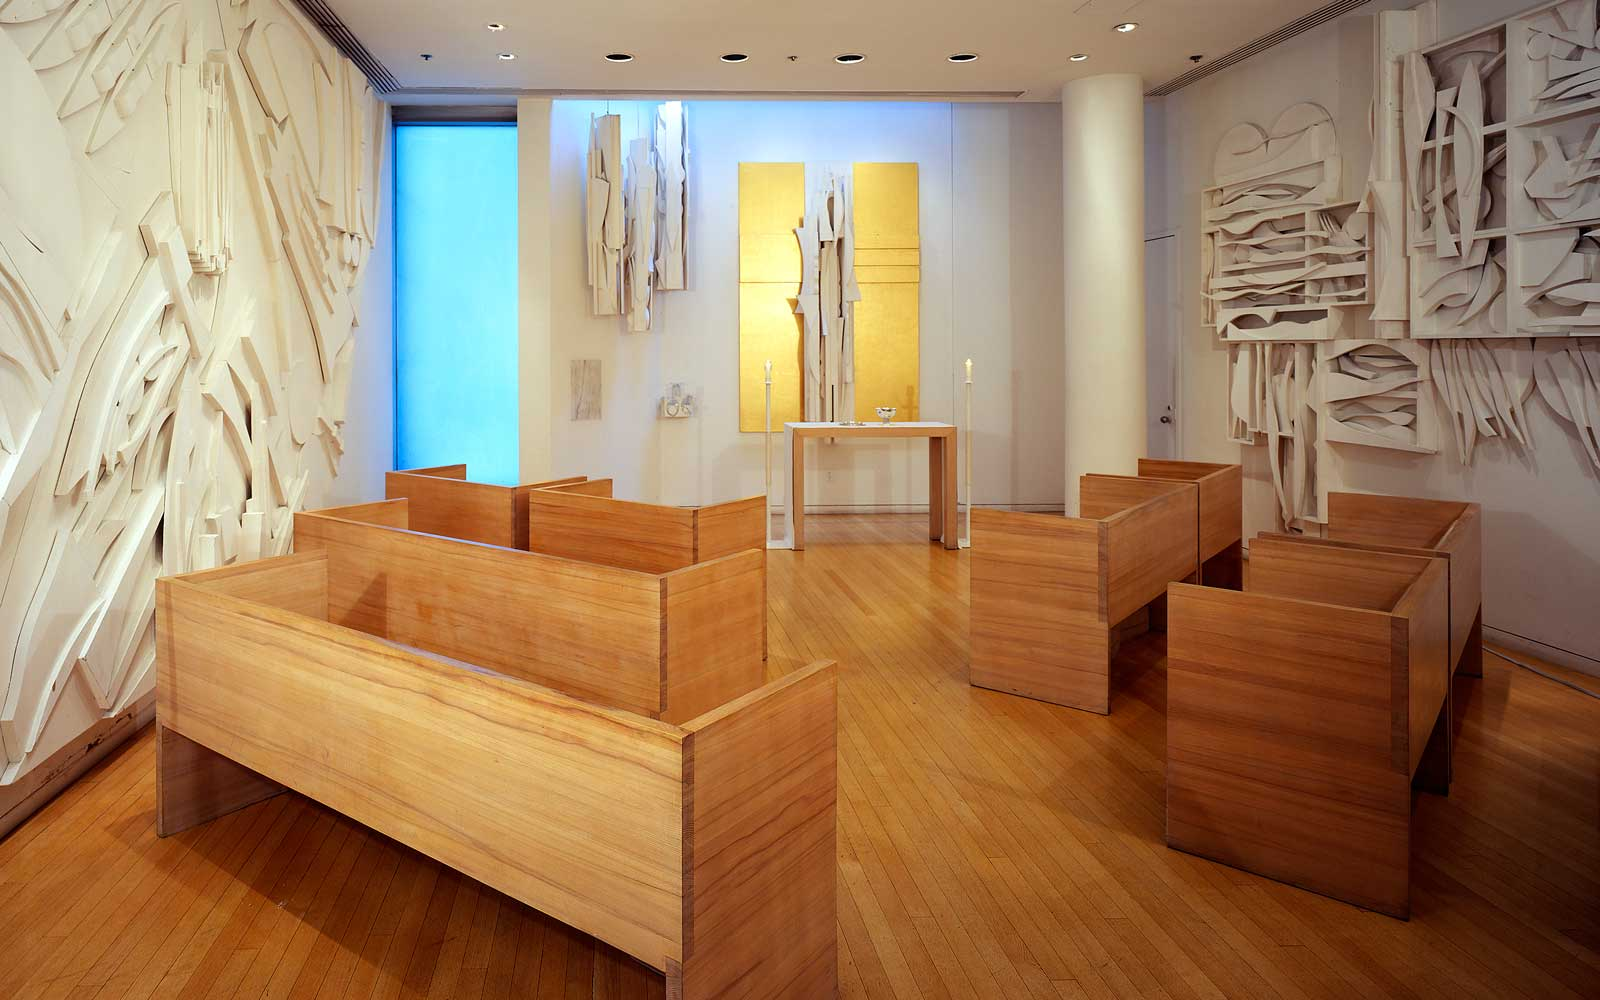 Louise Nevelson, The Chapel Of The Good Shepherd at Saint Peter's Church, 1975, New York